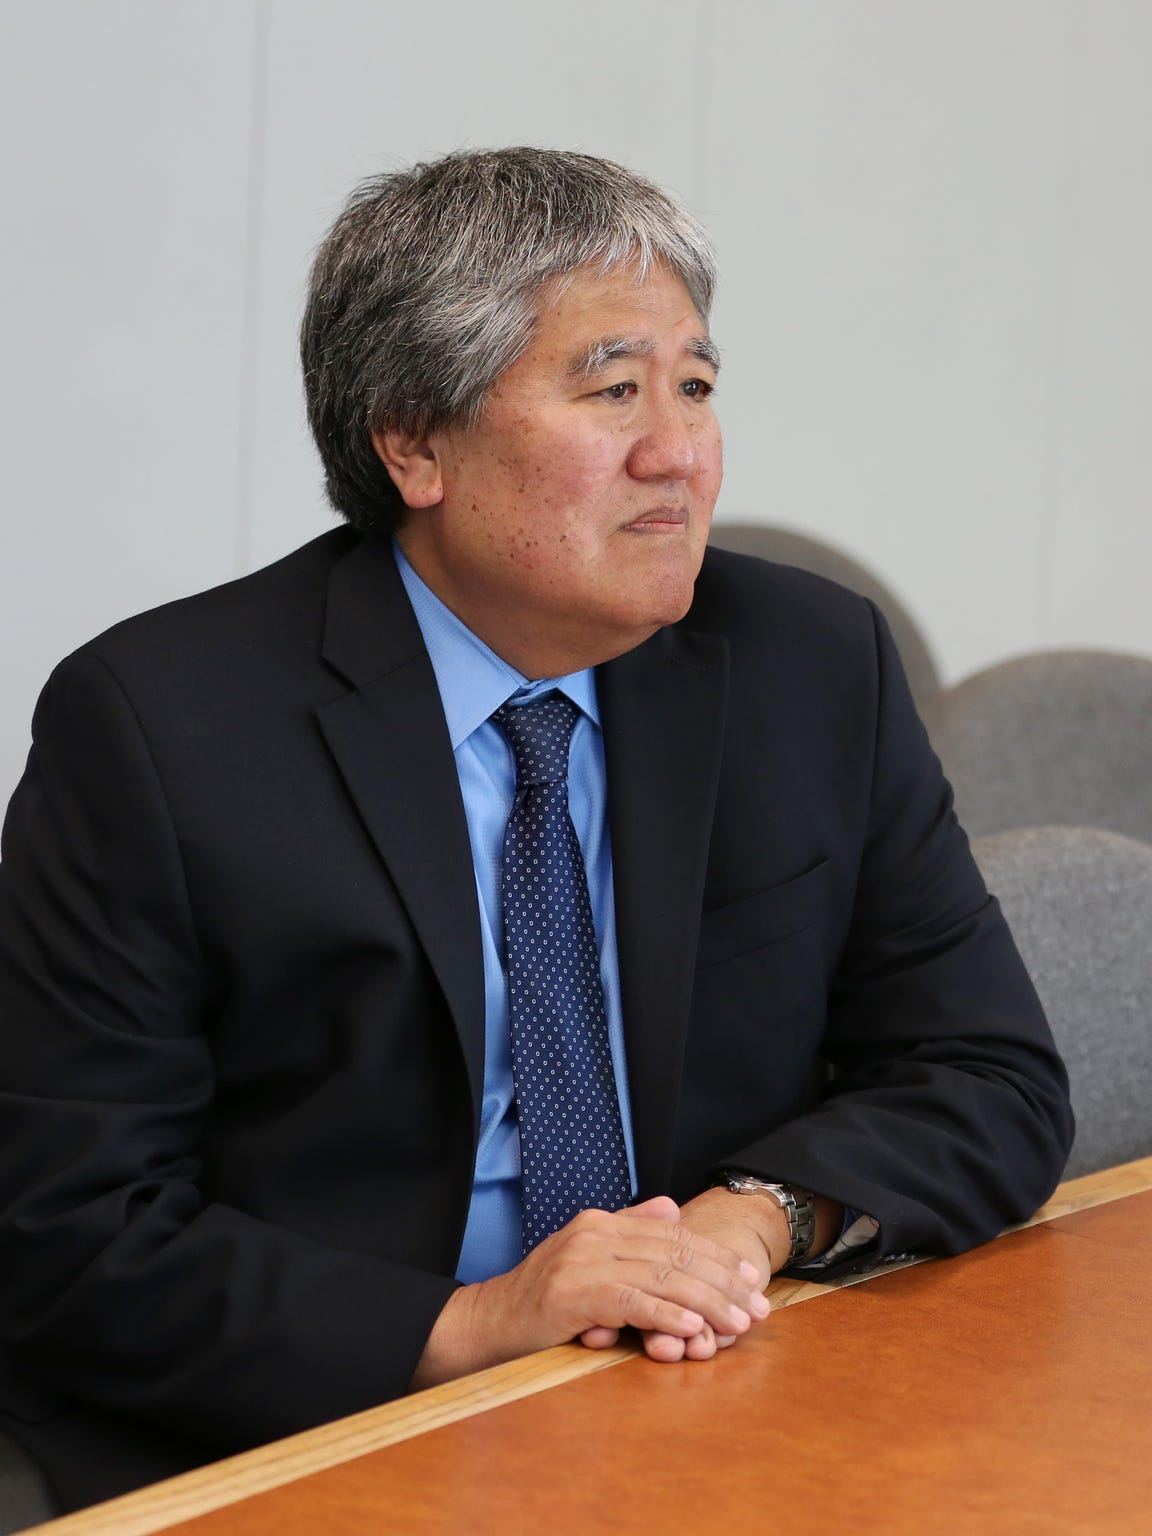 Clyde Saiki, Director of Oregon Department of Human Services, meets with the Statesman Journal for an interview on Wednesday, April 20, 2016, in Salem.